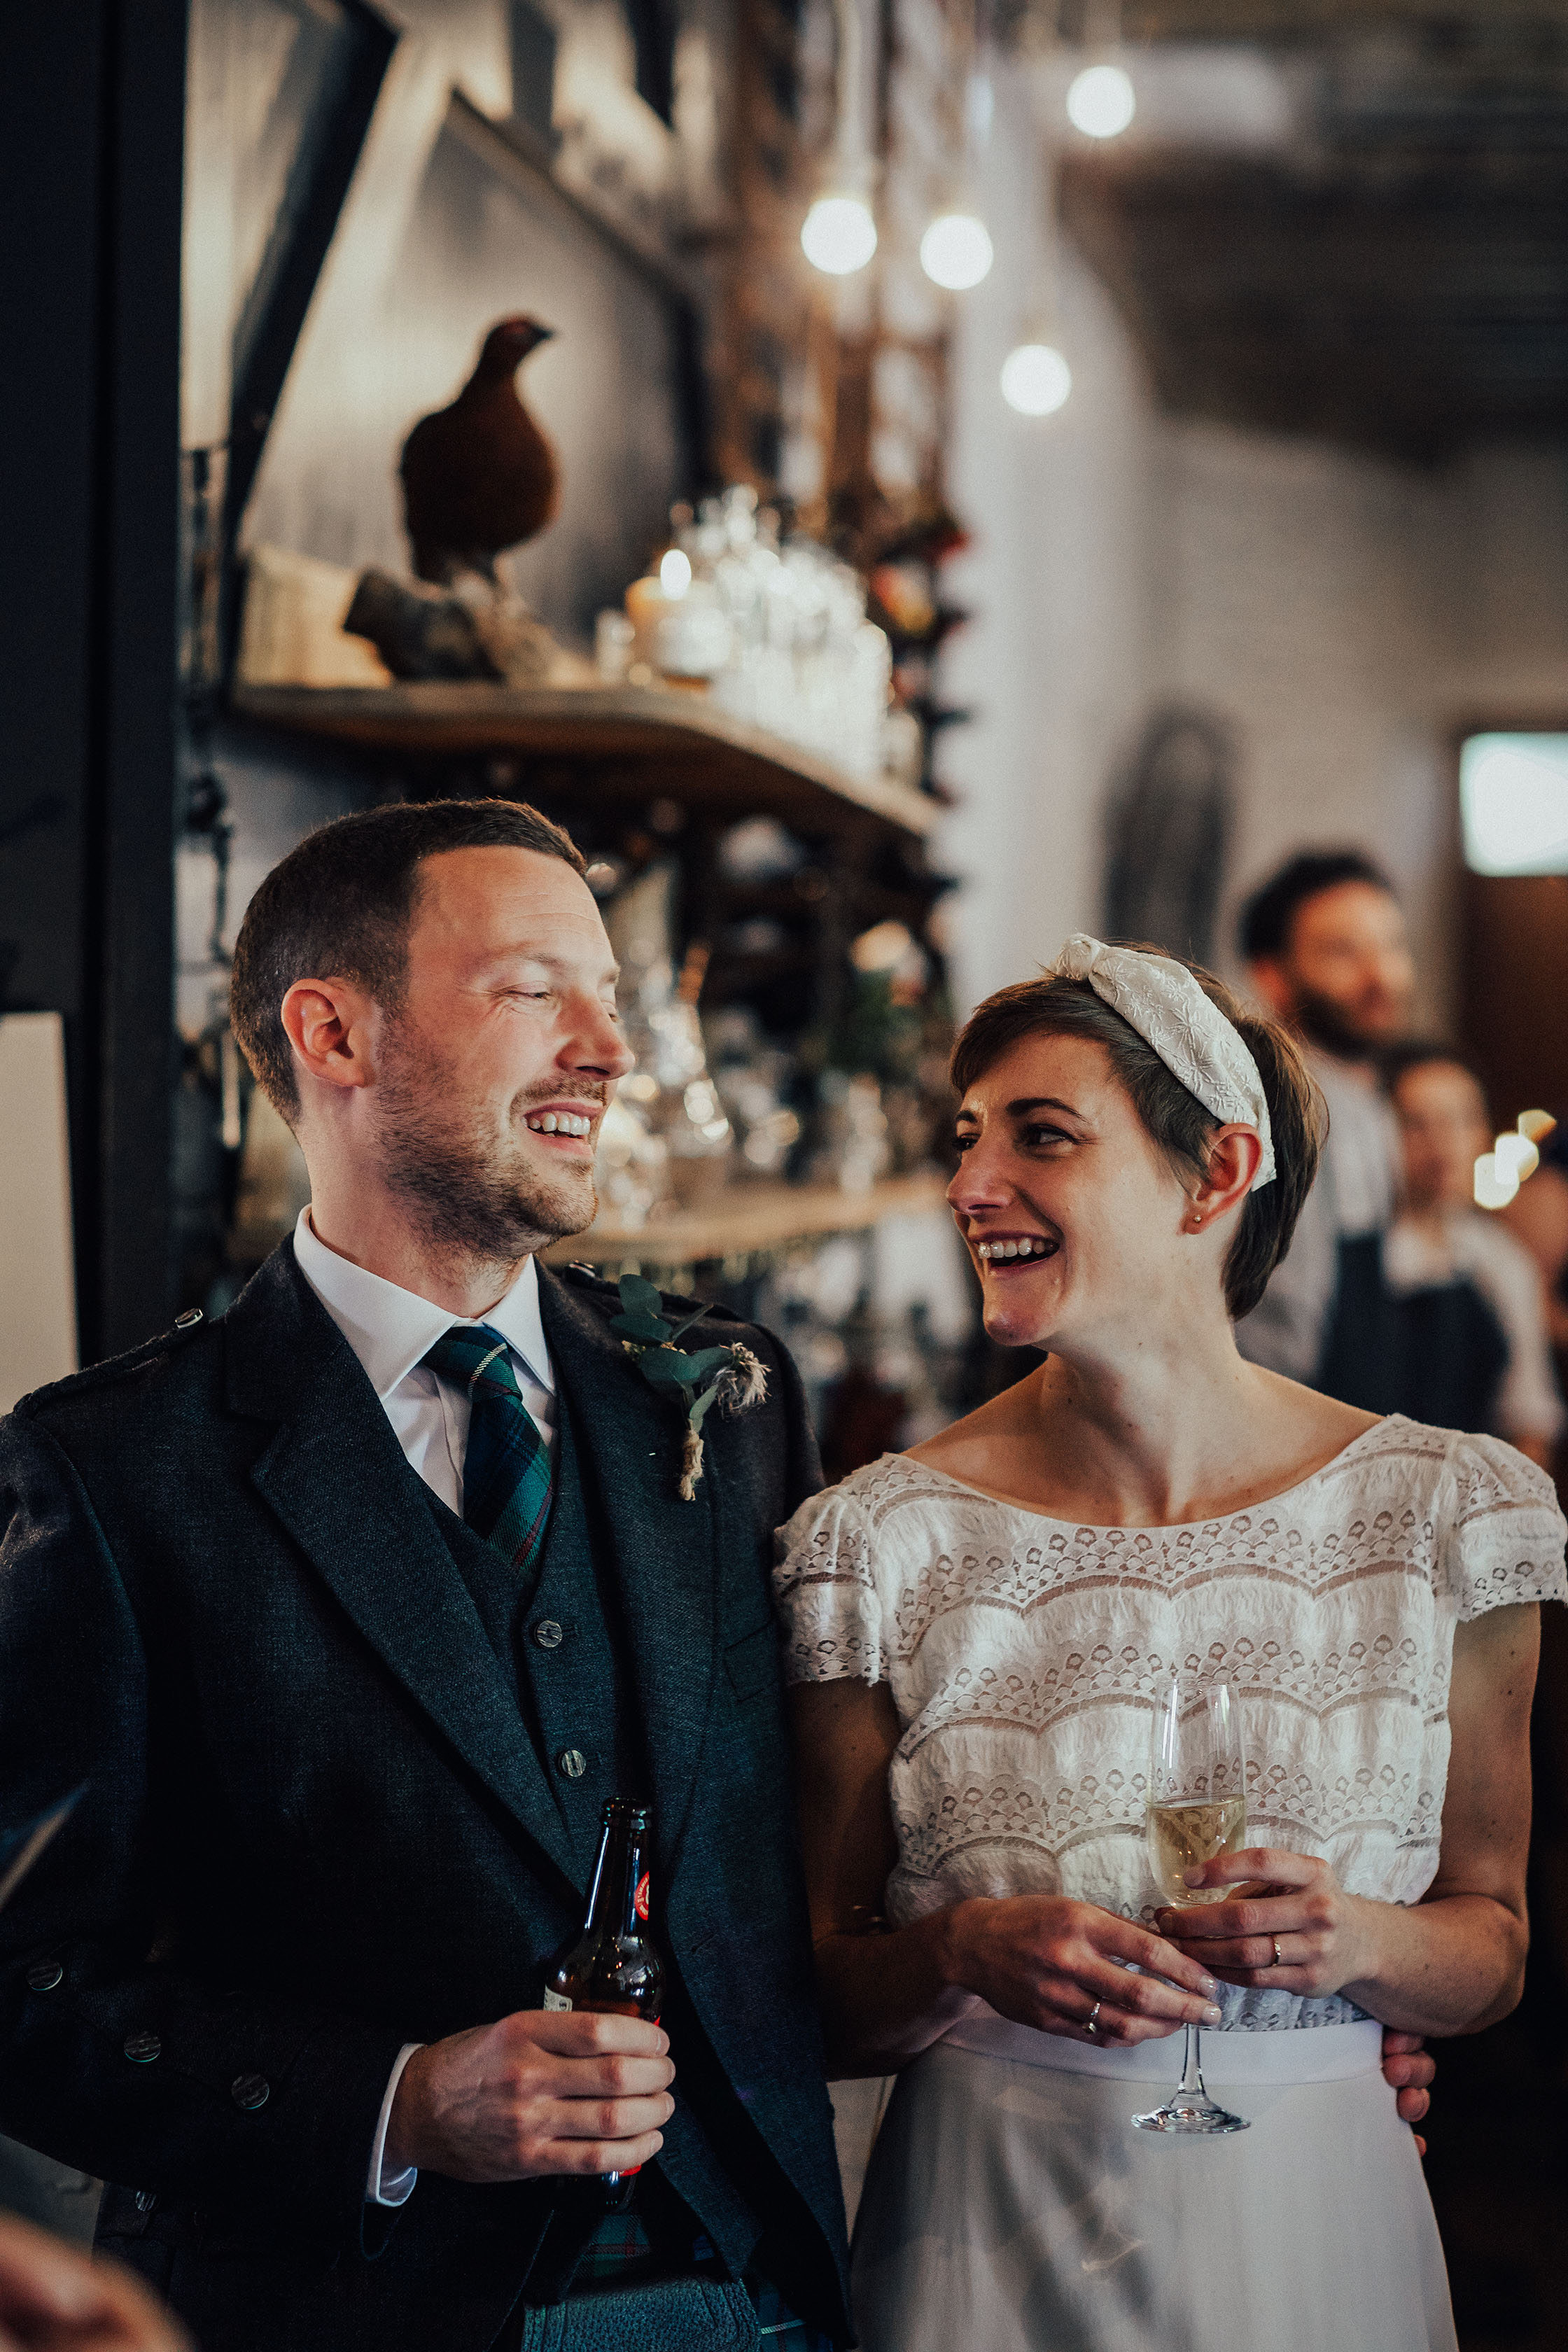 TIMBERYARD_EDINBURGH_WEDDING_PJ_PHILLIPS_PHOTOGRAPHY_158.jpg